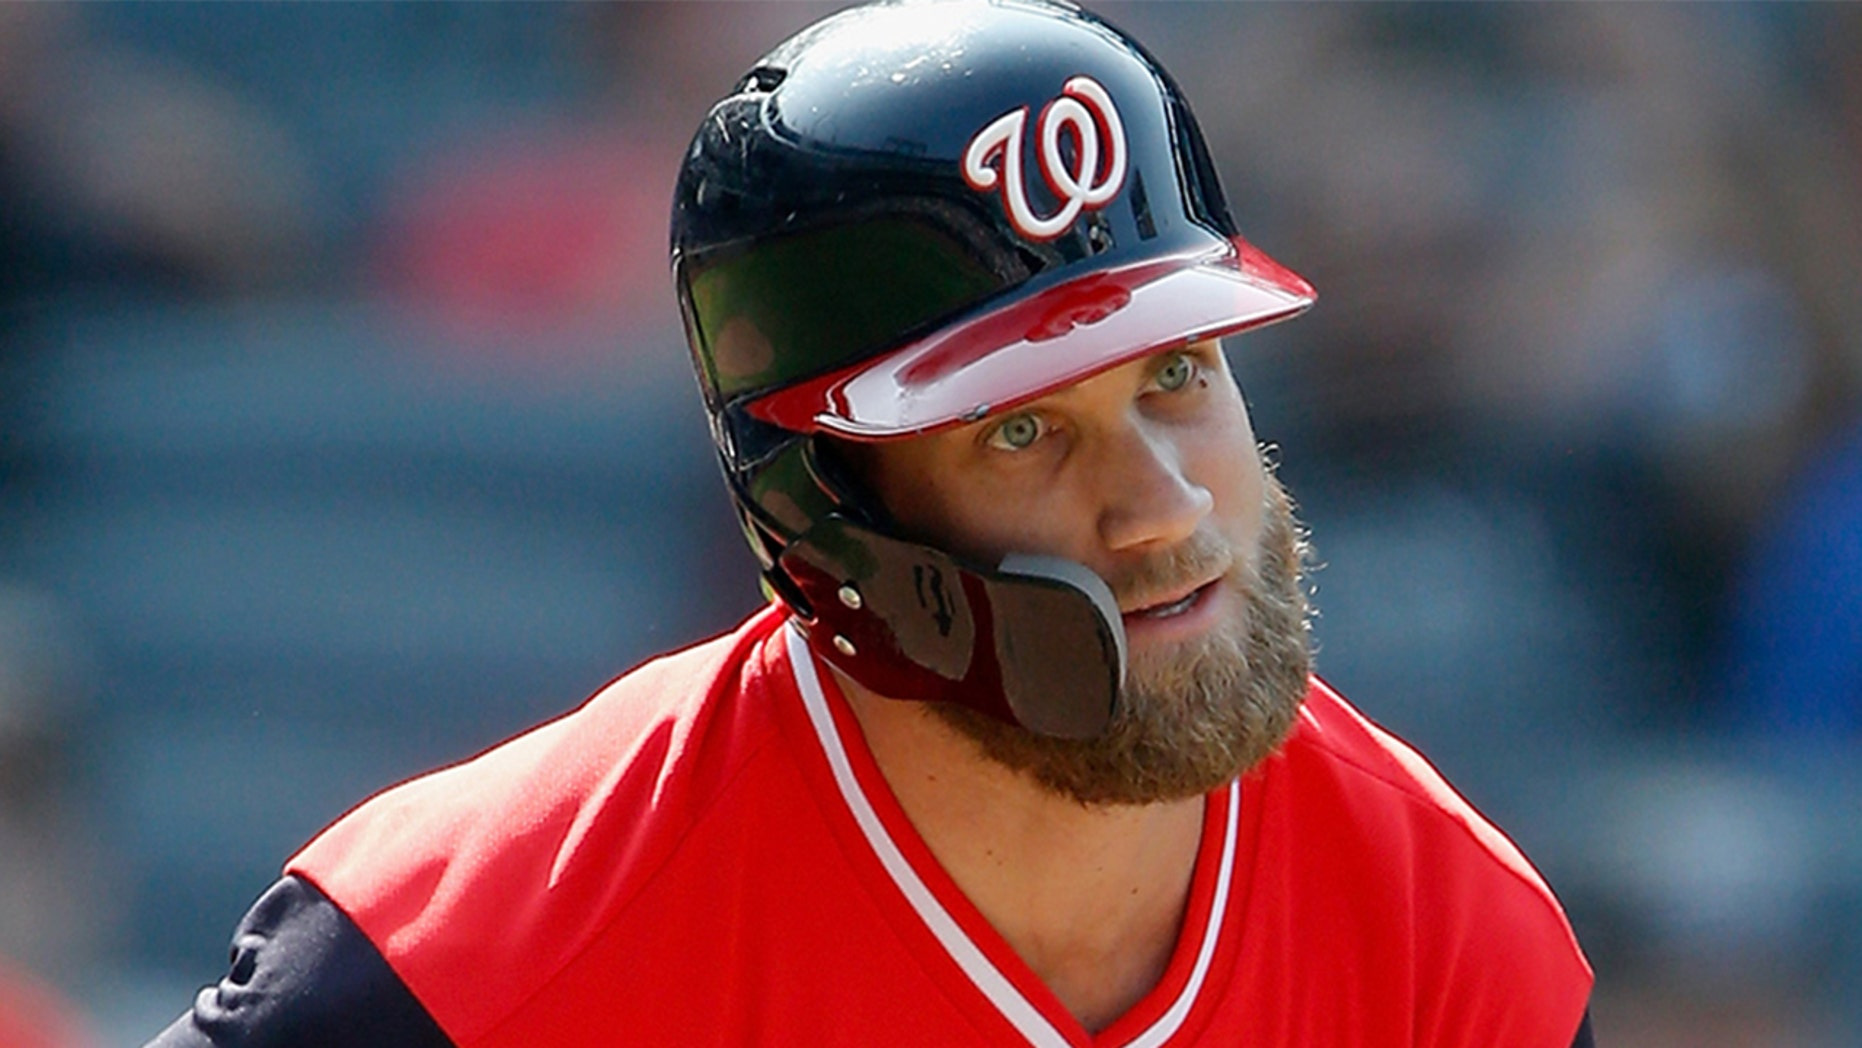 Bryce Harper has played all seven years of his career with the Washington Nationals. (Photo by Jim McIsaac/Getty Images)